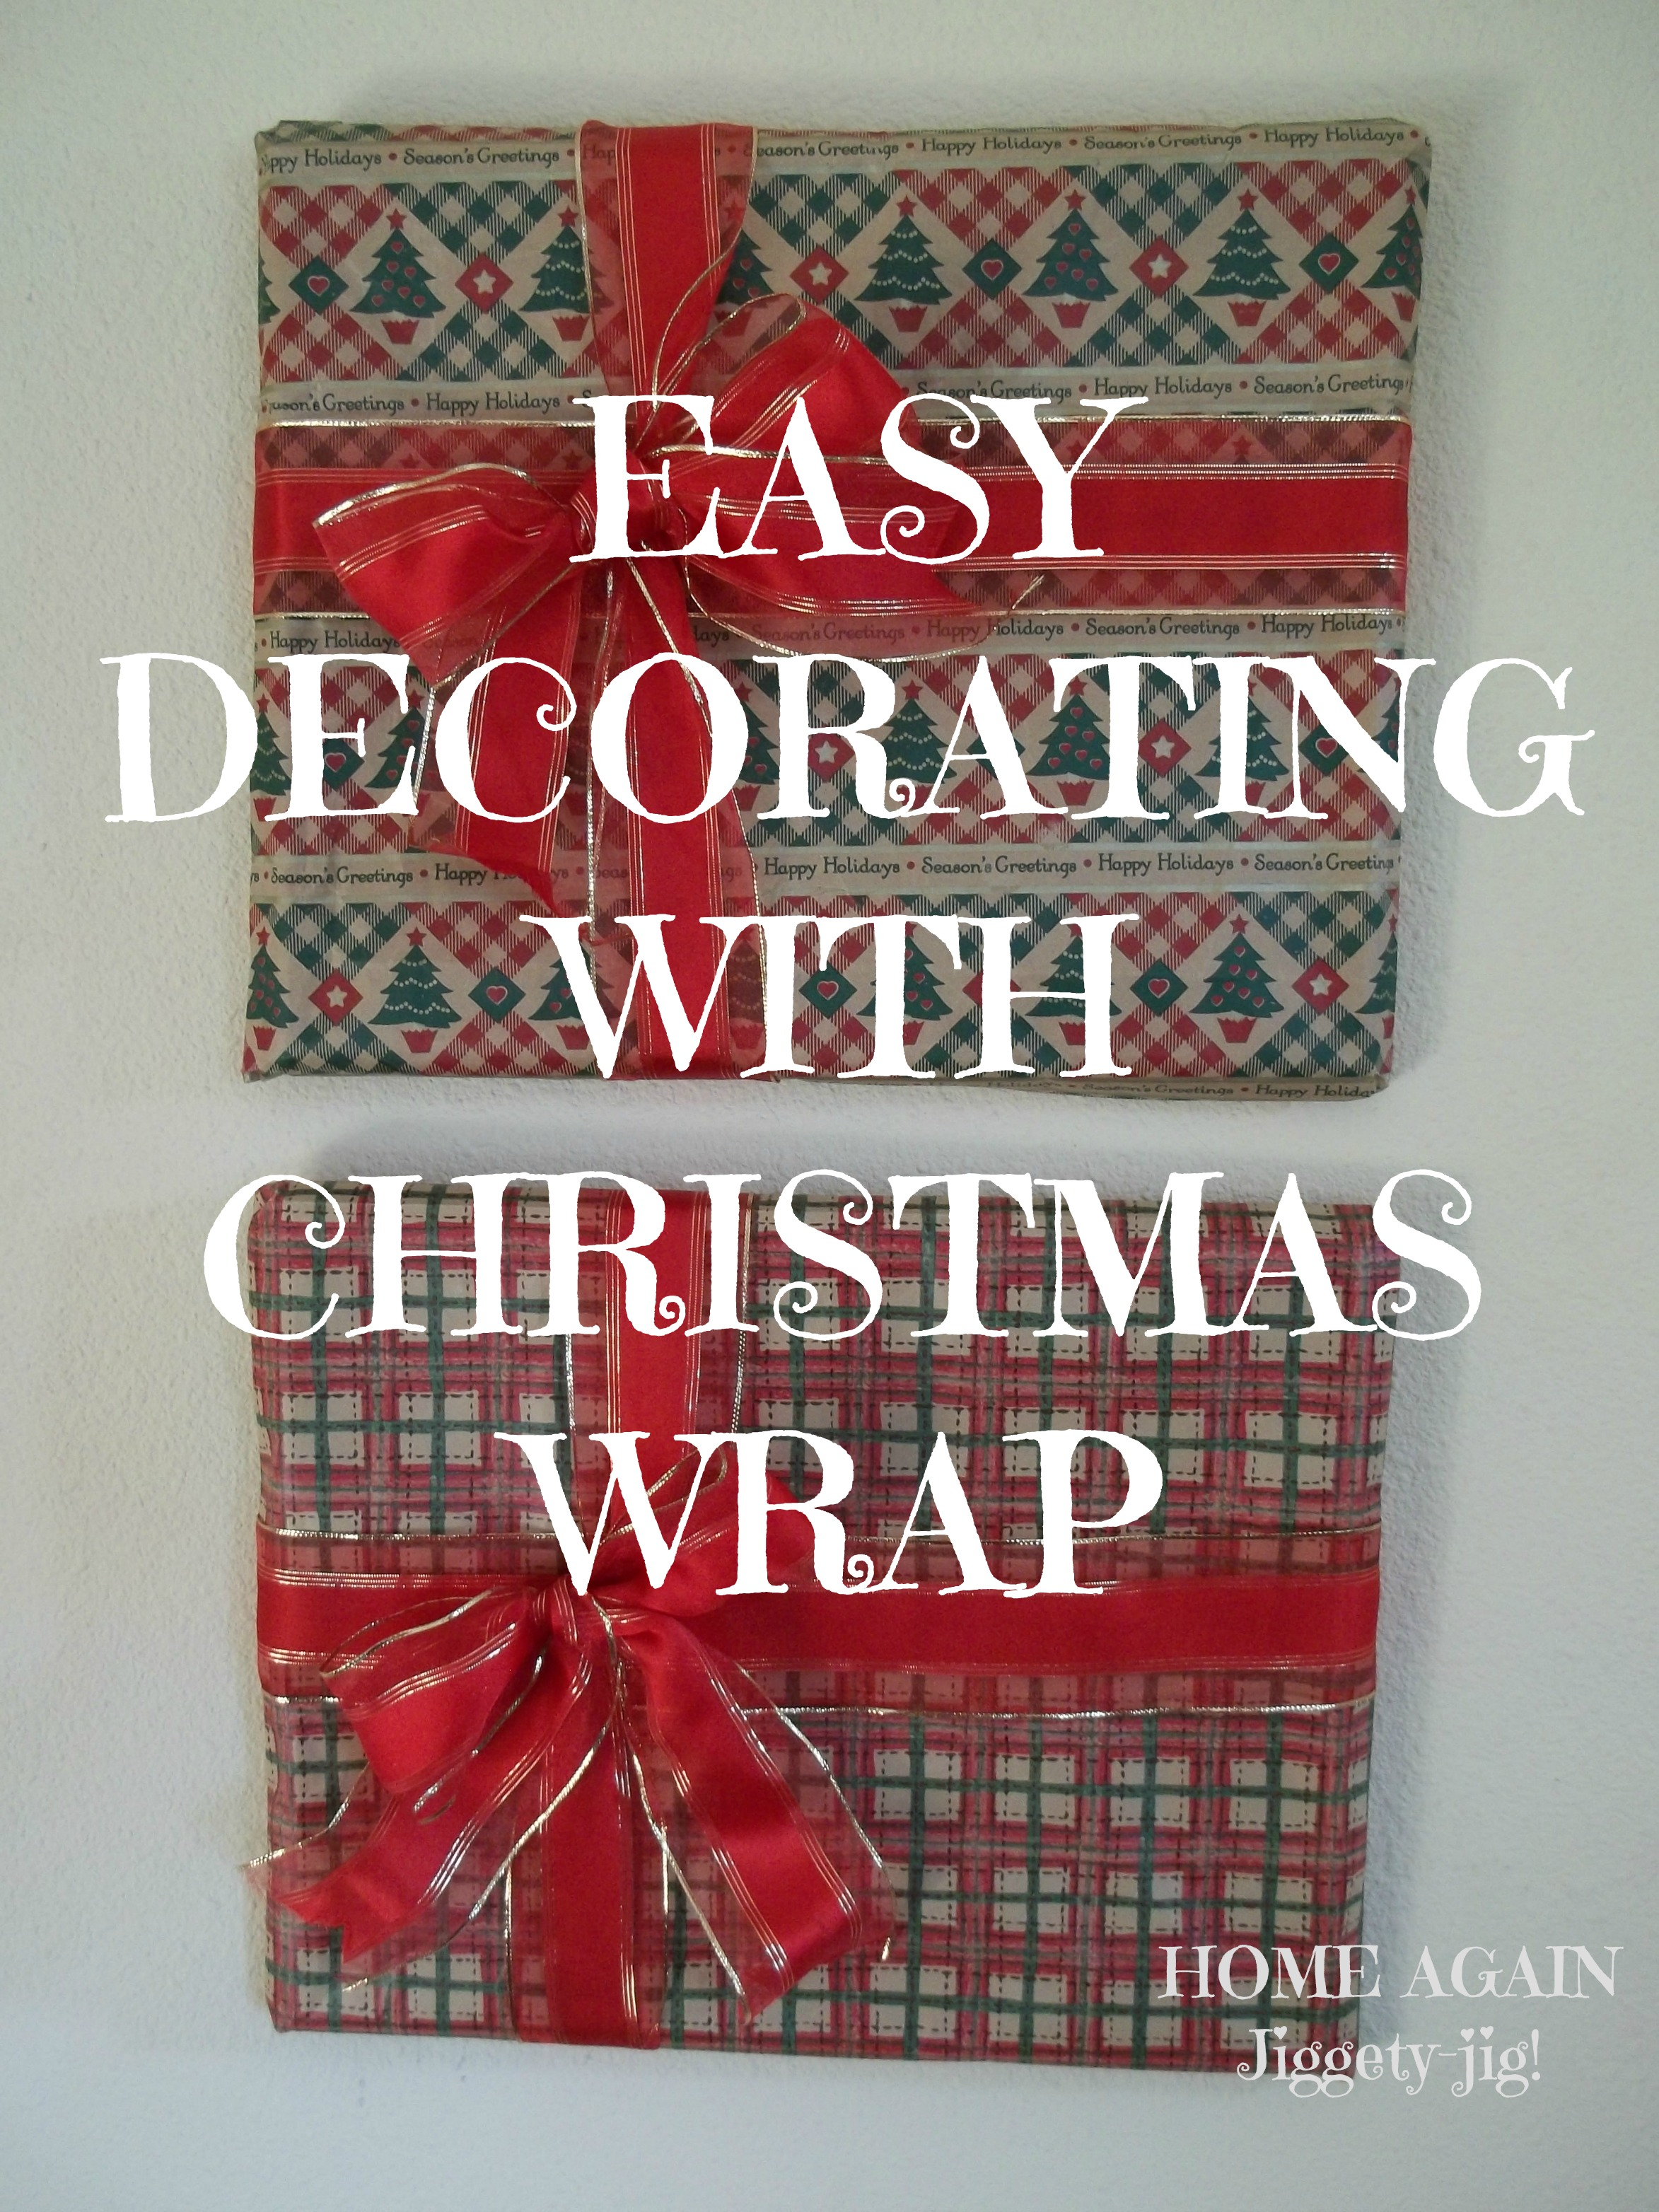 EASY DECORATING WITH WRAPPING PAPER